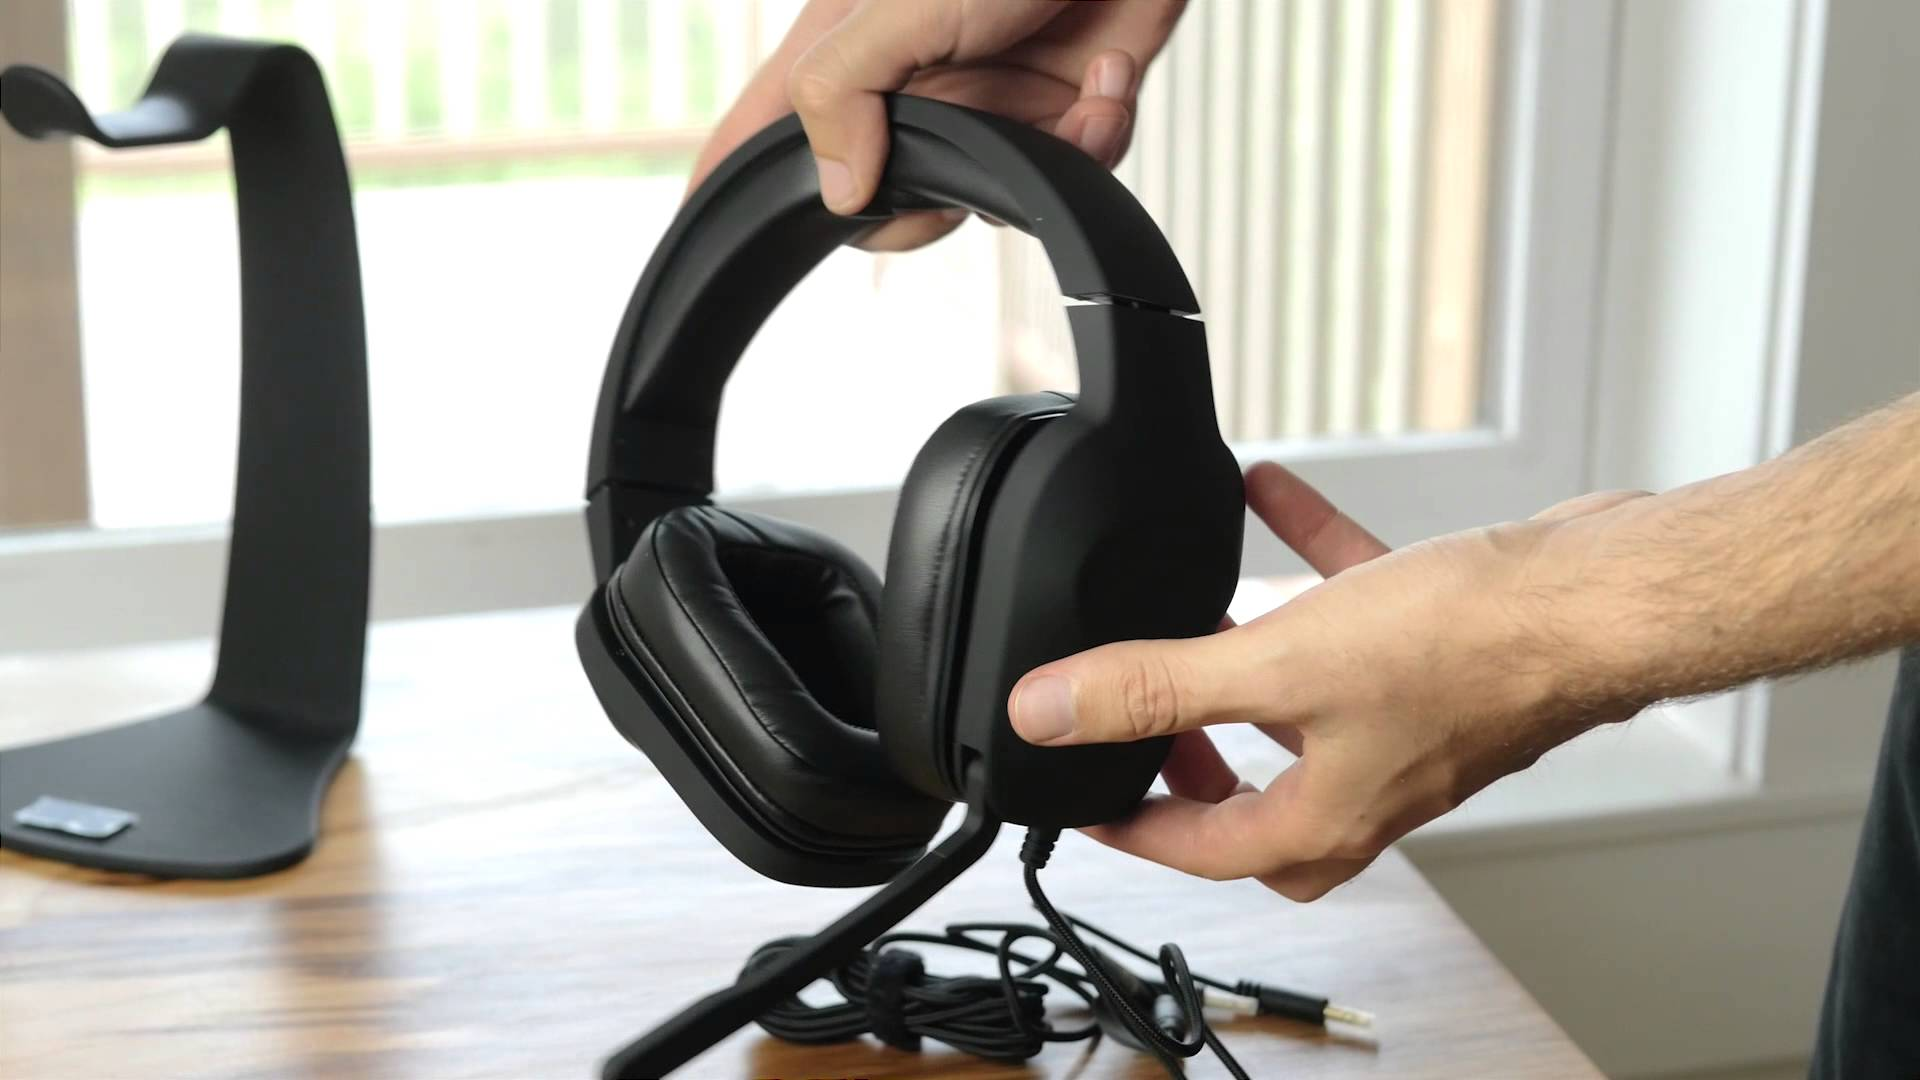 MIONIX NASH 20 Stereo Gaming Headset